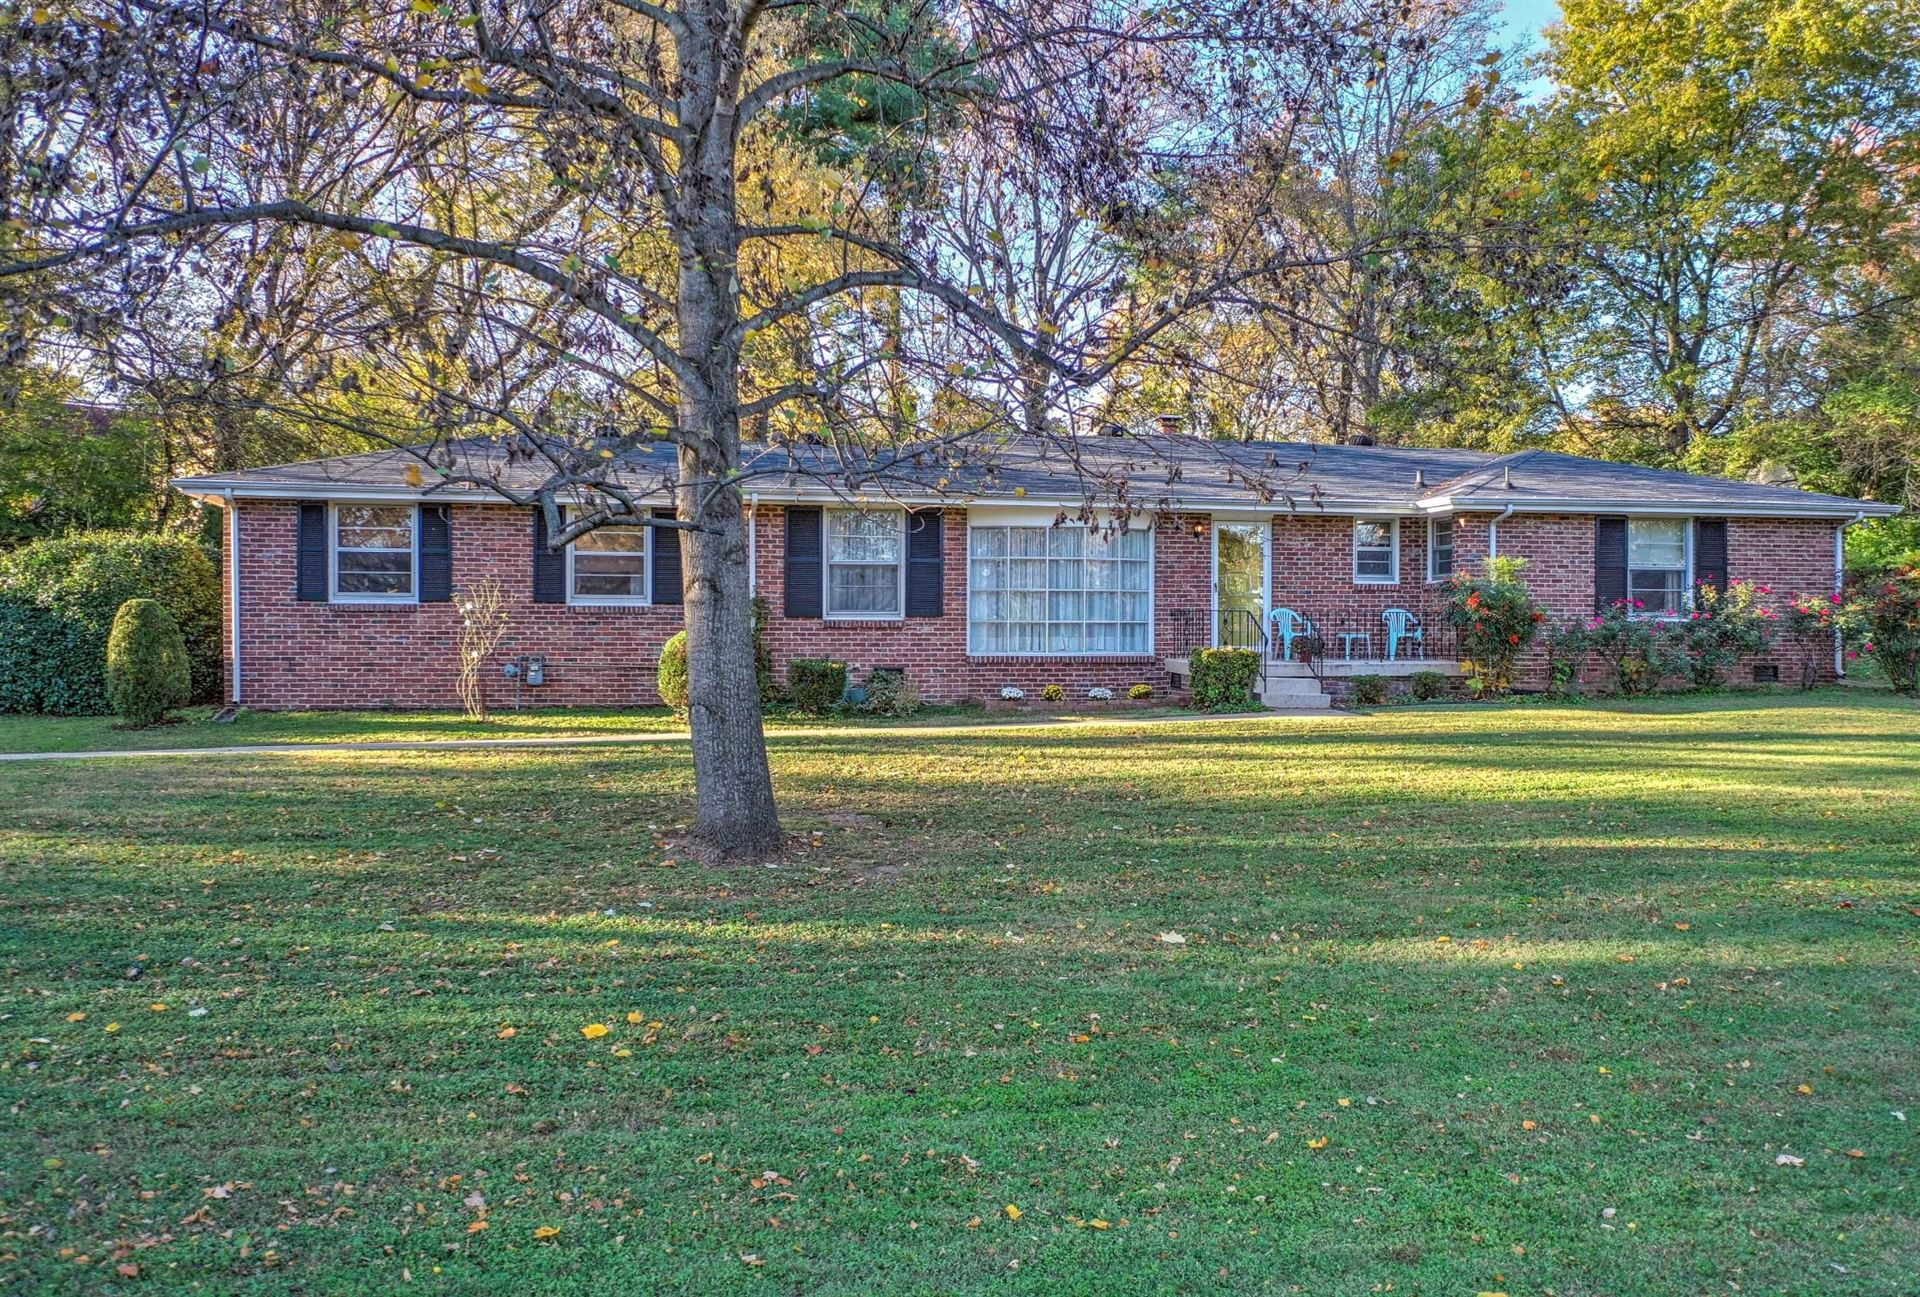 413 Foothill Dr, Nashville, TN 37217 - MLS#: 2206513